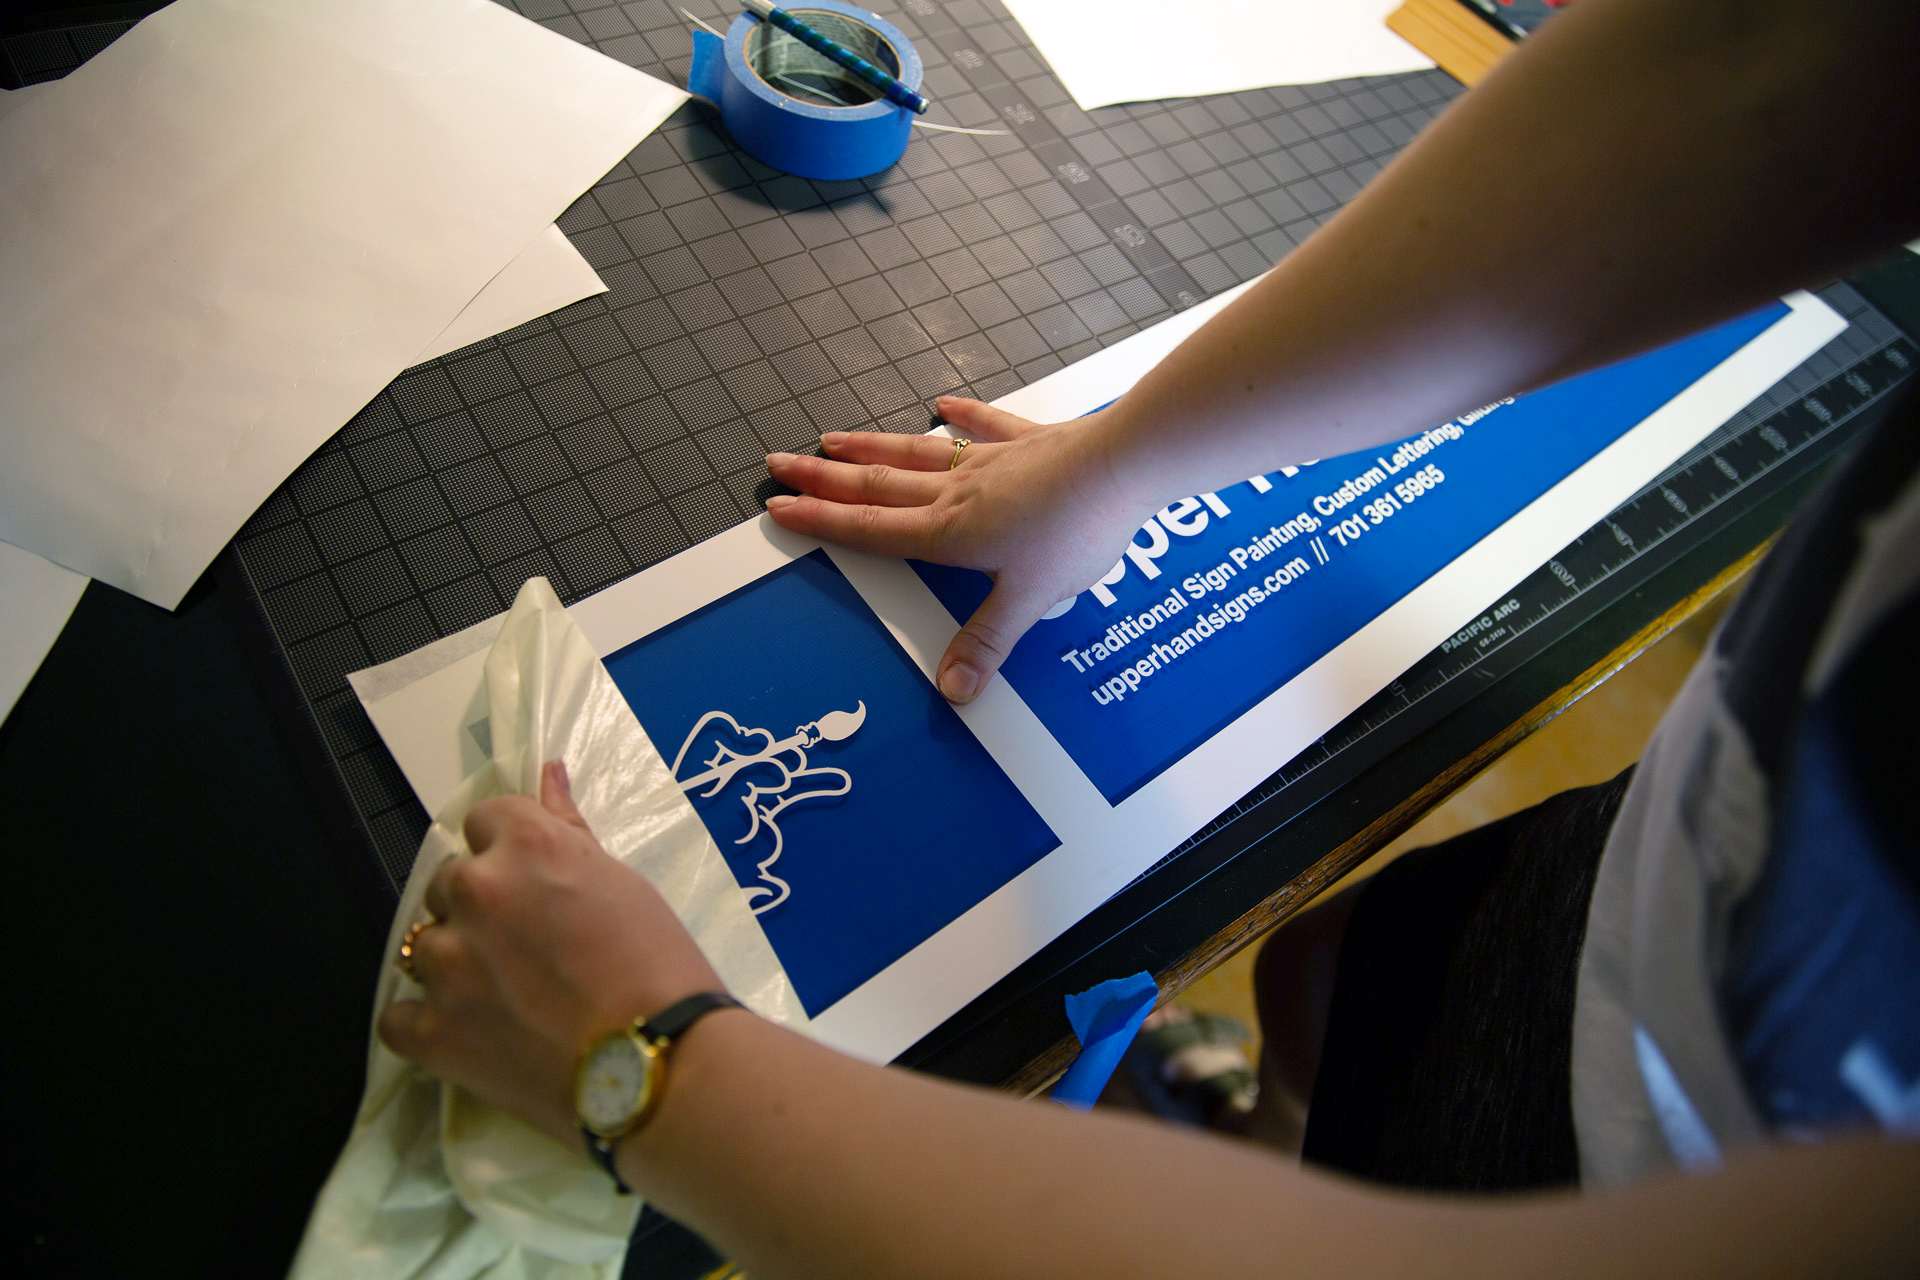 White vinyl for Upper Hand Signs being applied to acrylic with blue backing